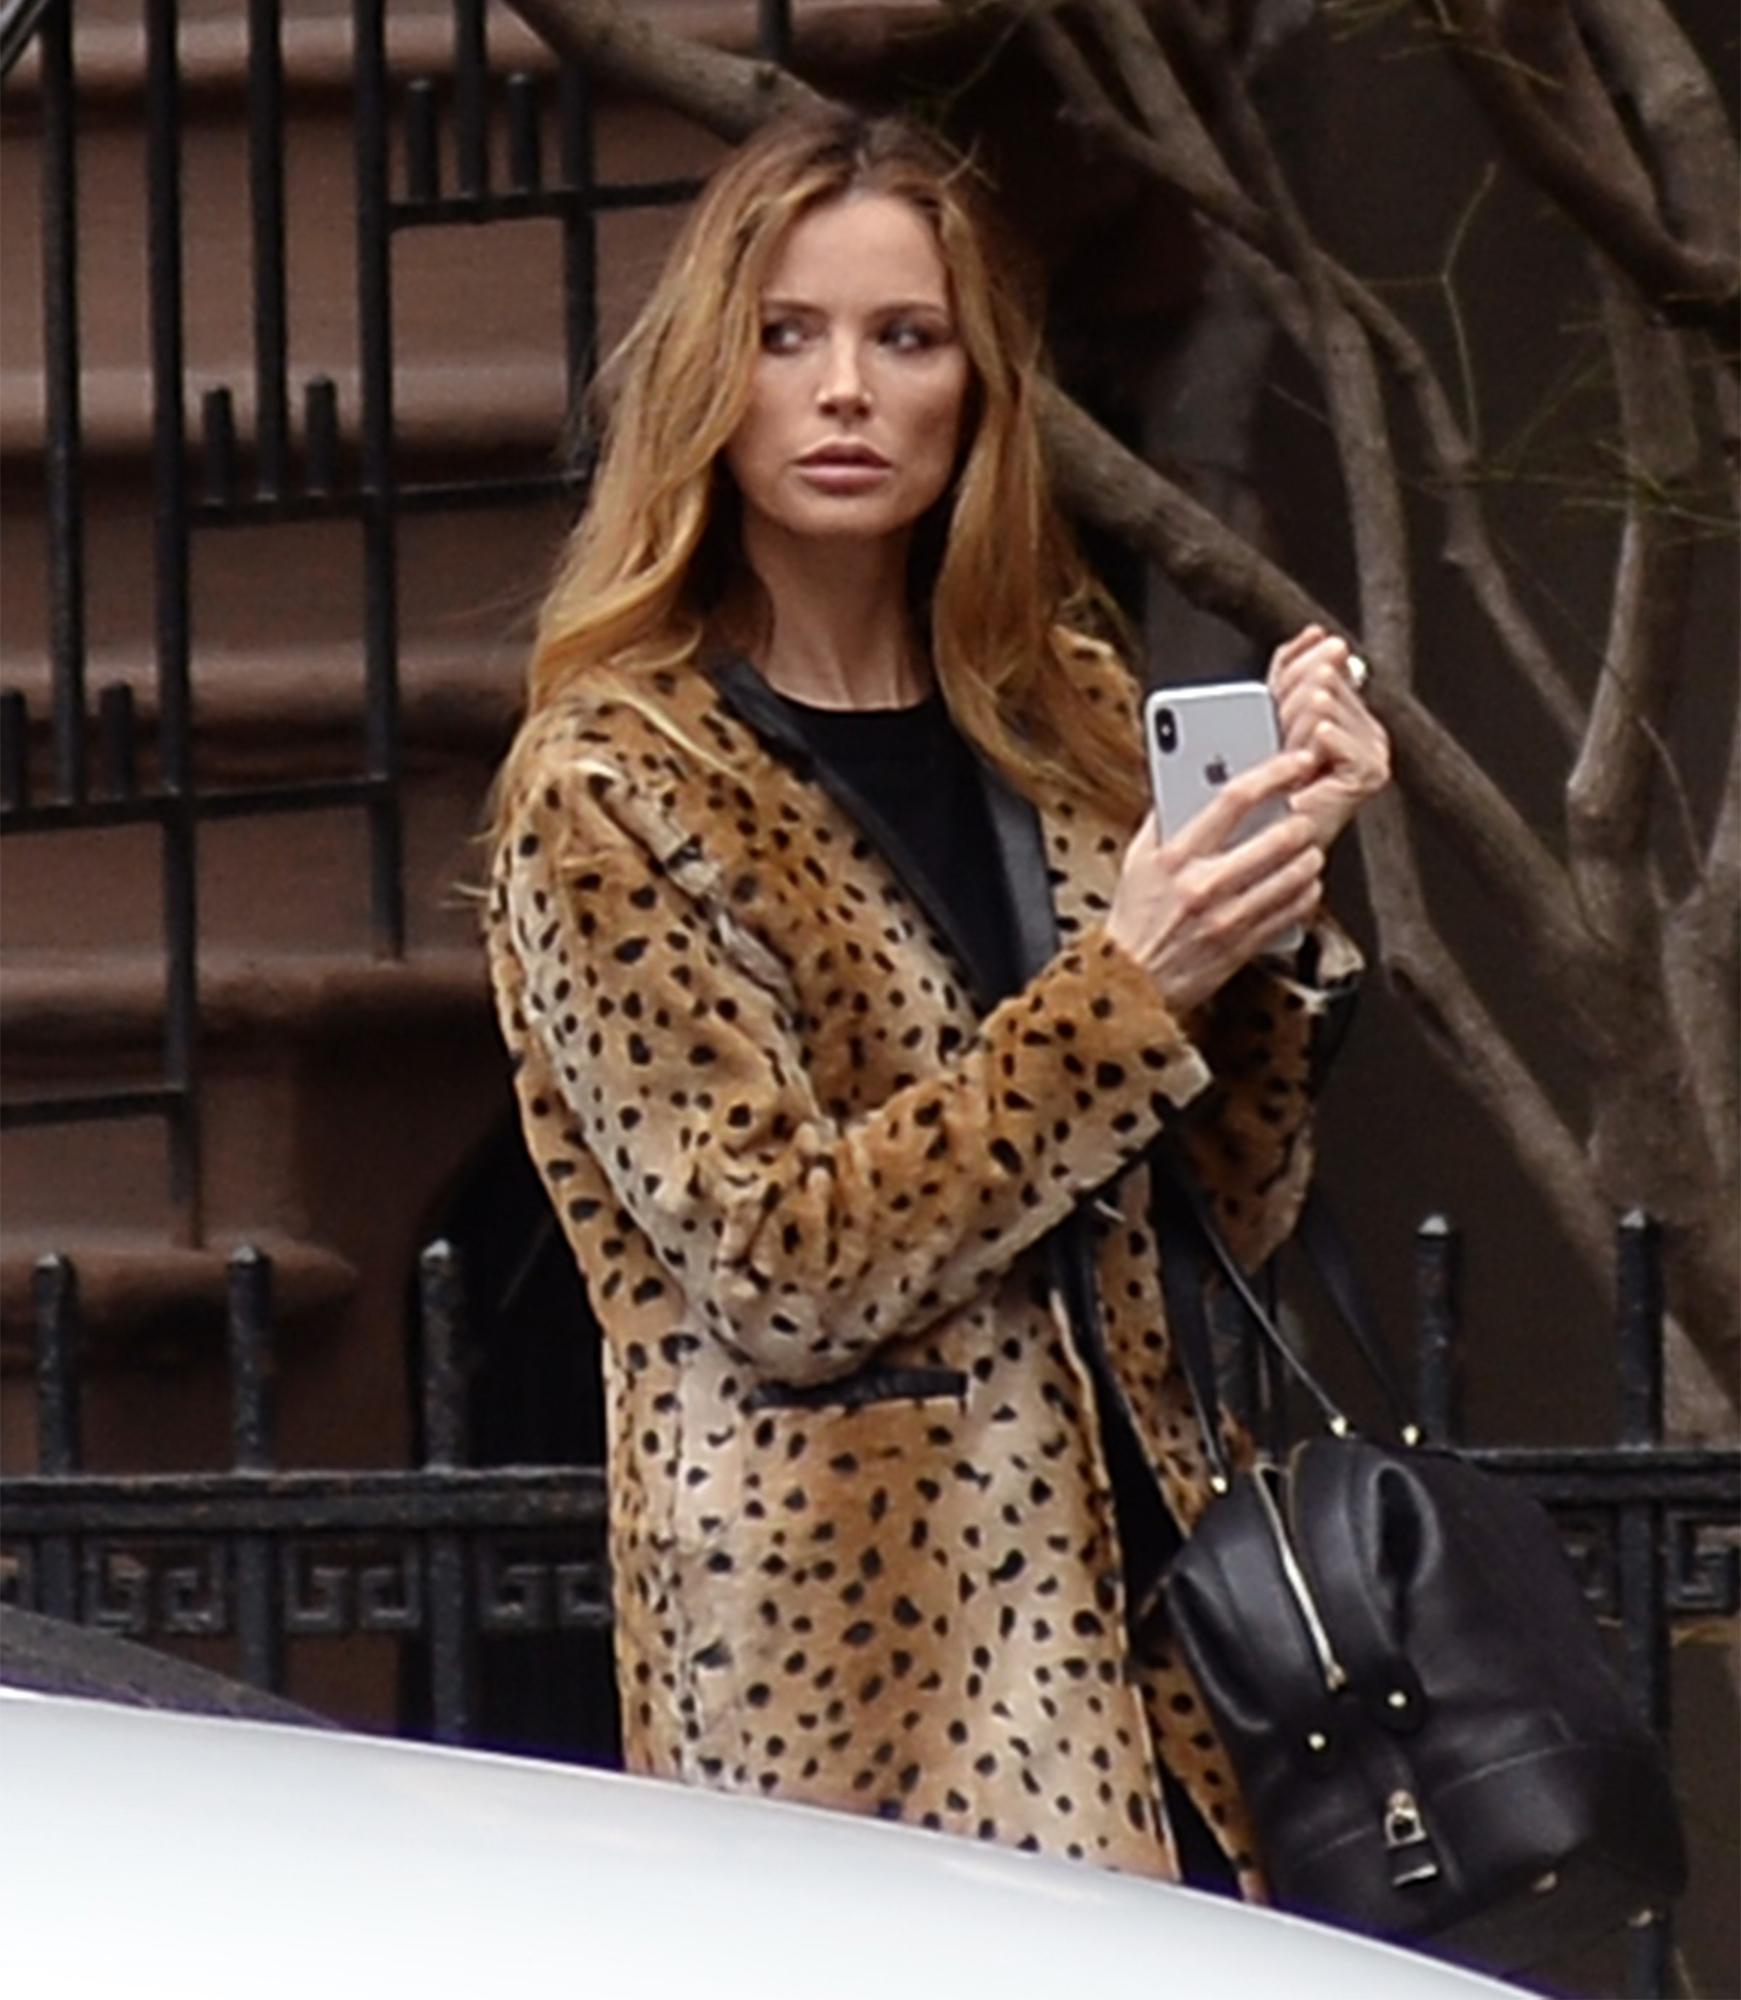 EXCLUSIVE: Georgina Chapman the Ex-Wife of Harvey Weinstein is spotted leaving his west village apartment this morning after reports he sold it few weeks ago for 26.6 millions